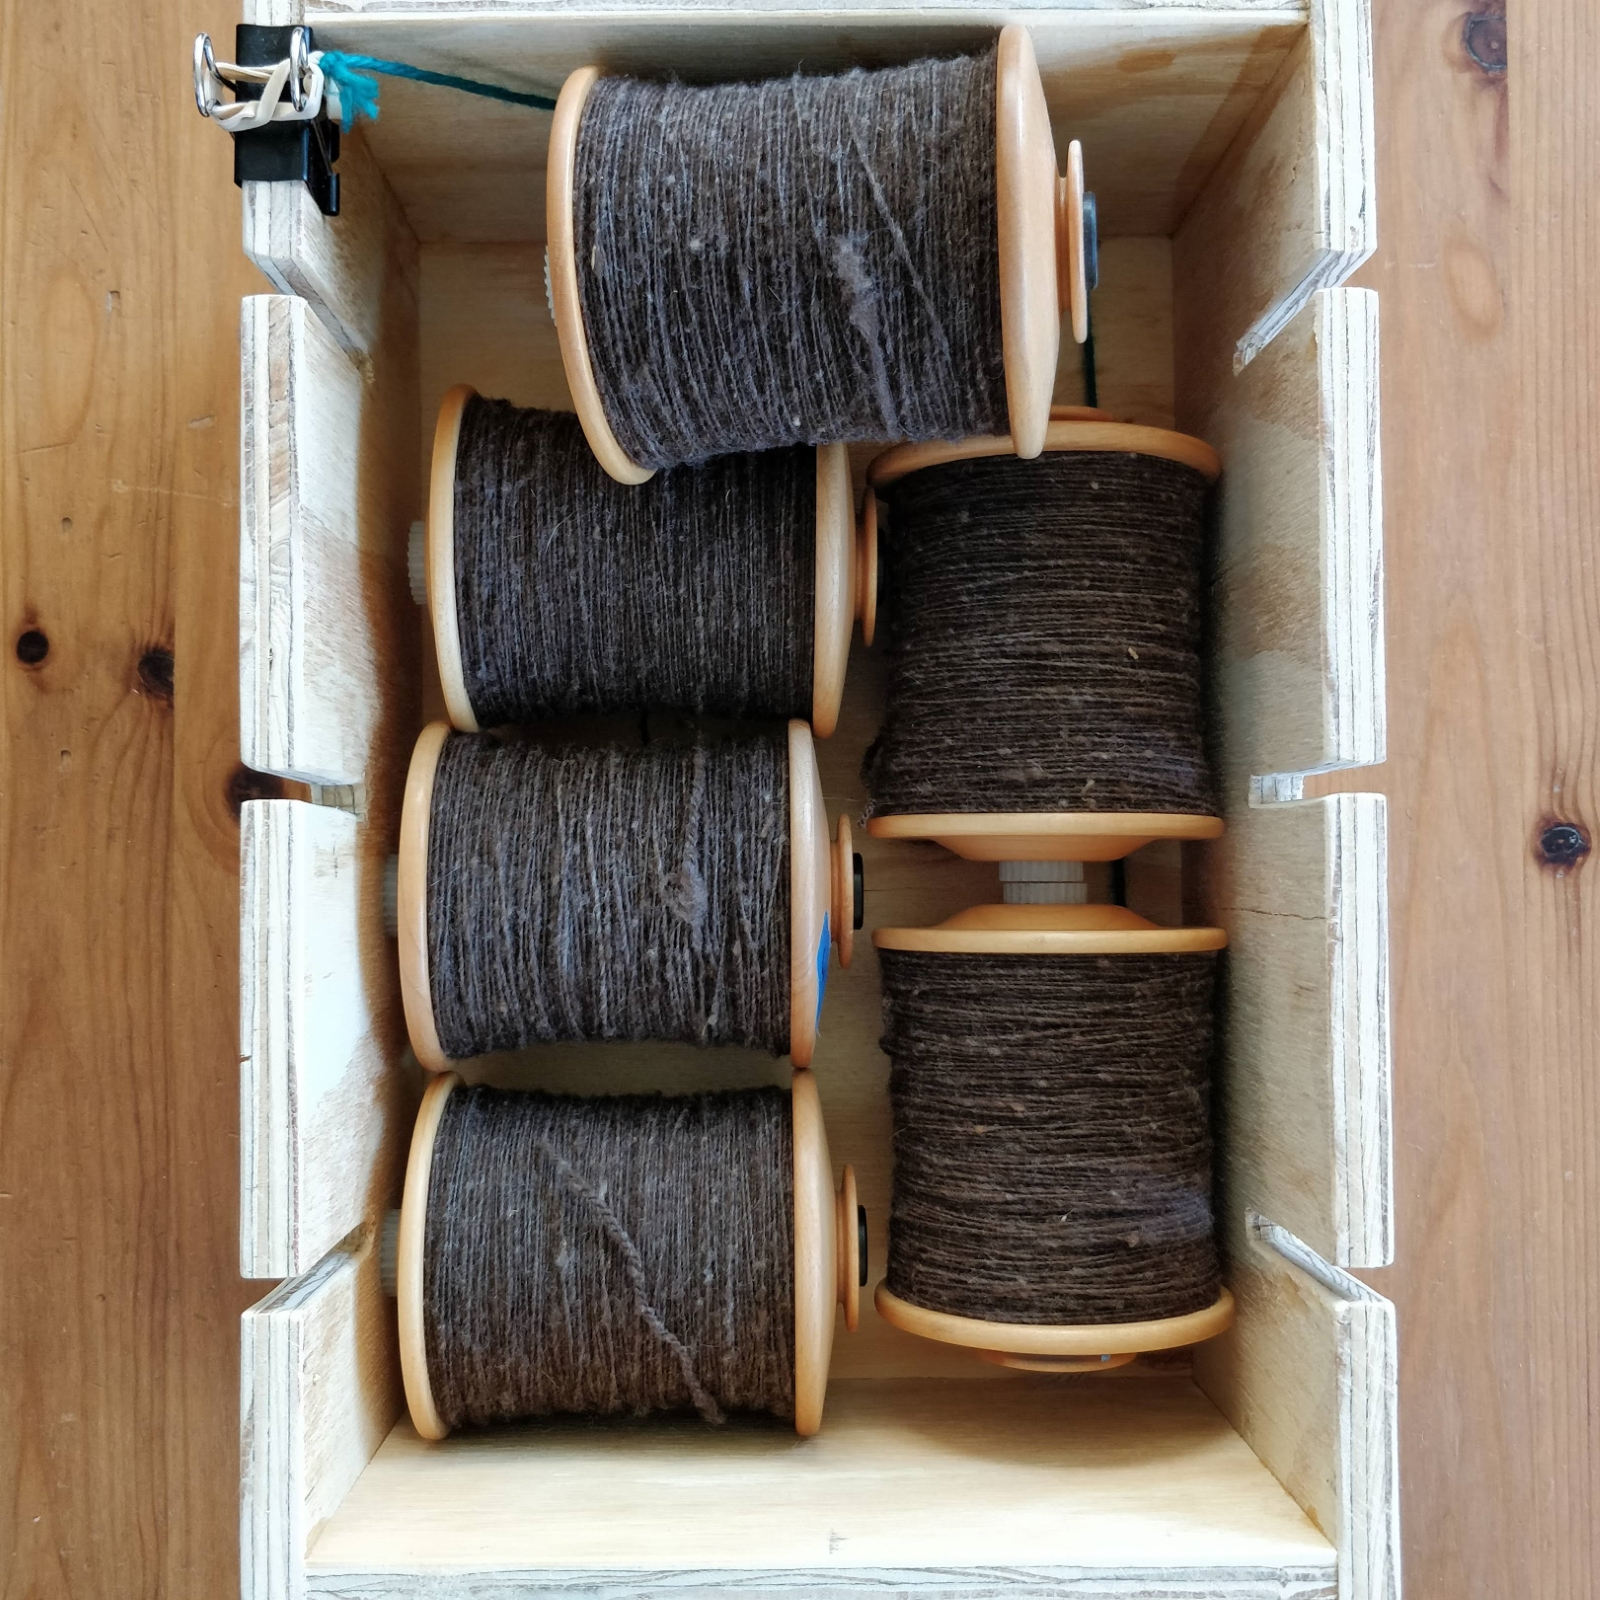 Six full bobbins of singles sit inside a plywood box.